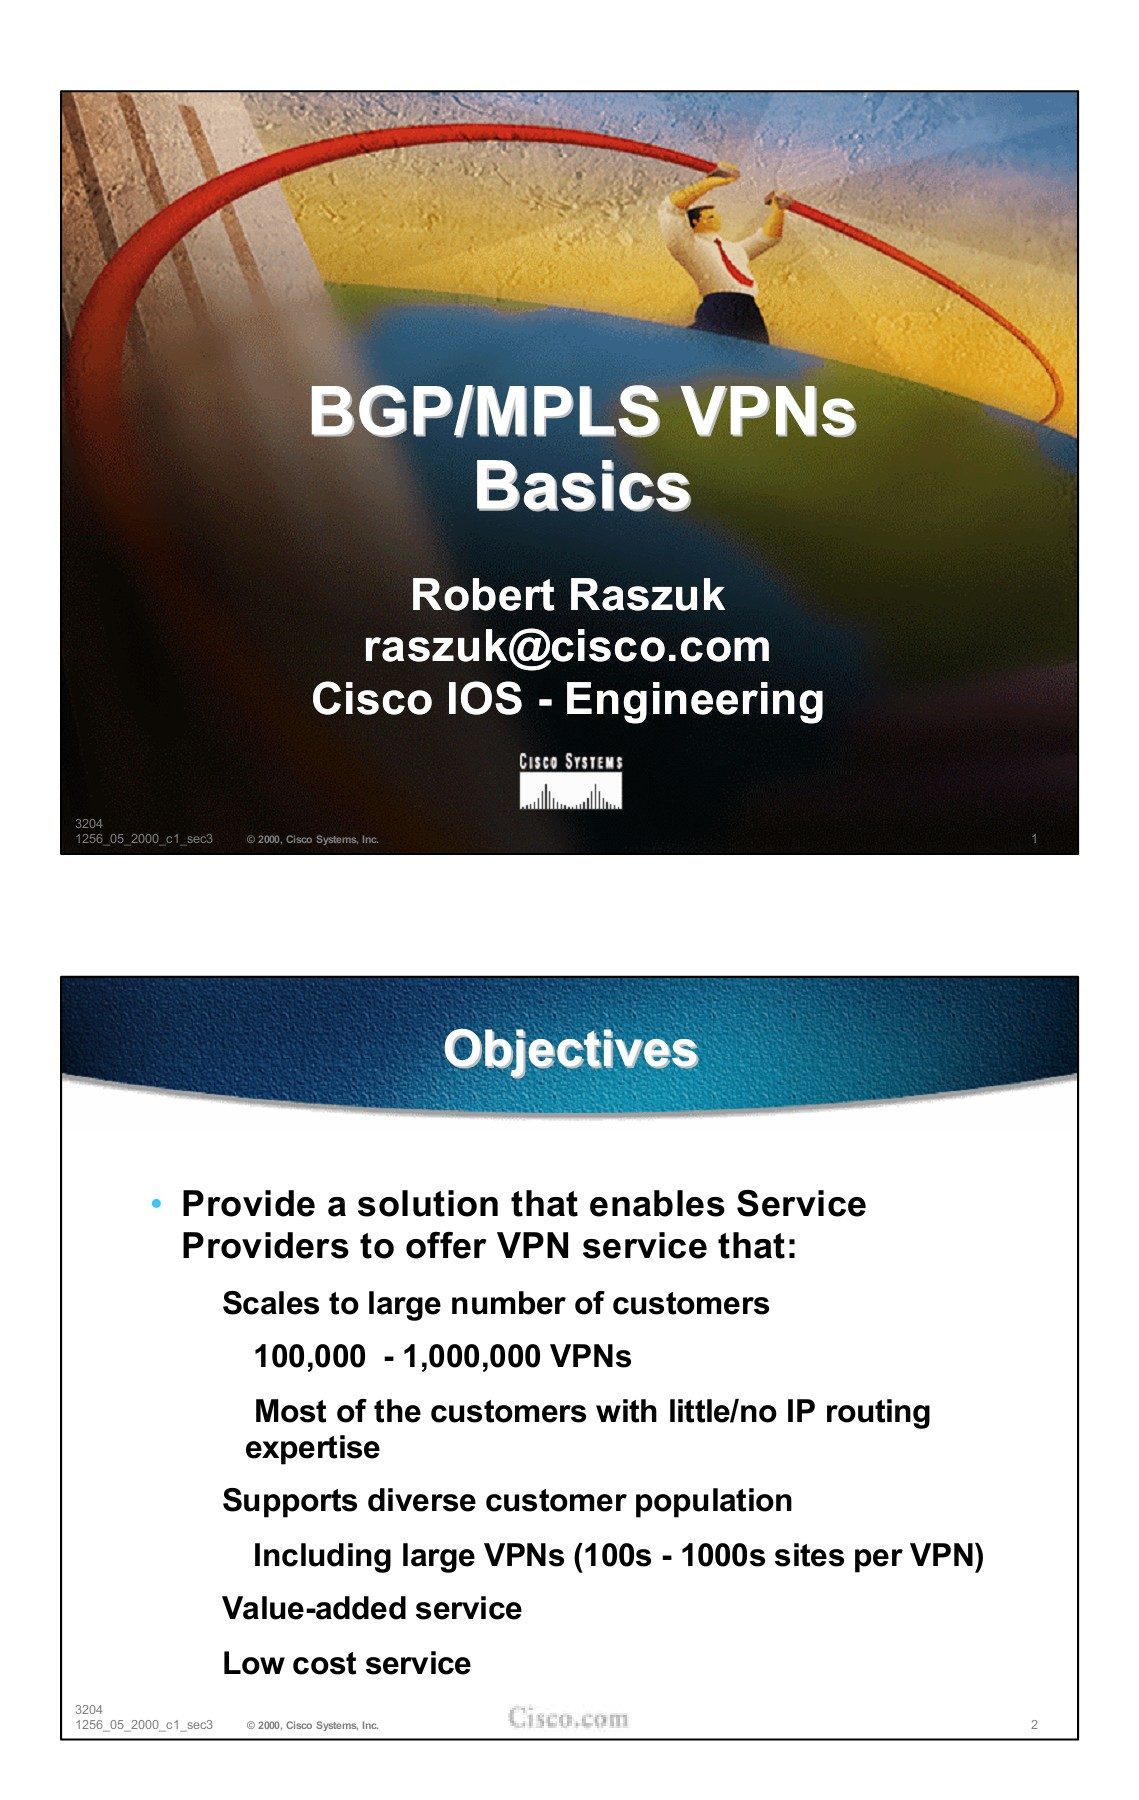 BGP/MPLS VPNs Basics - Cisco Systems, Inc